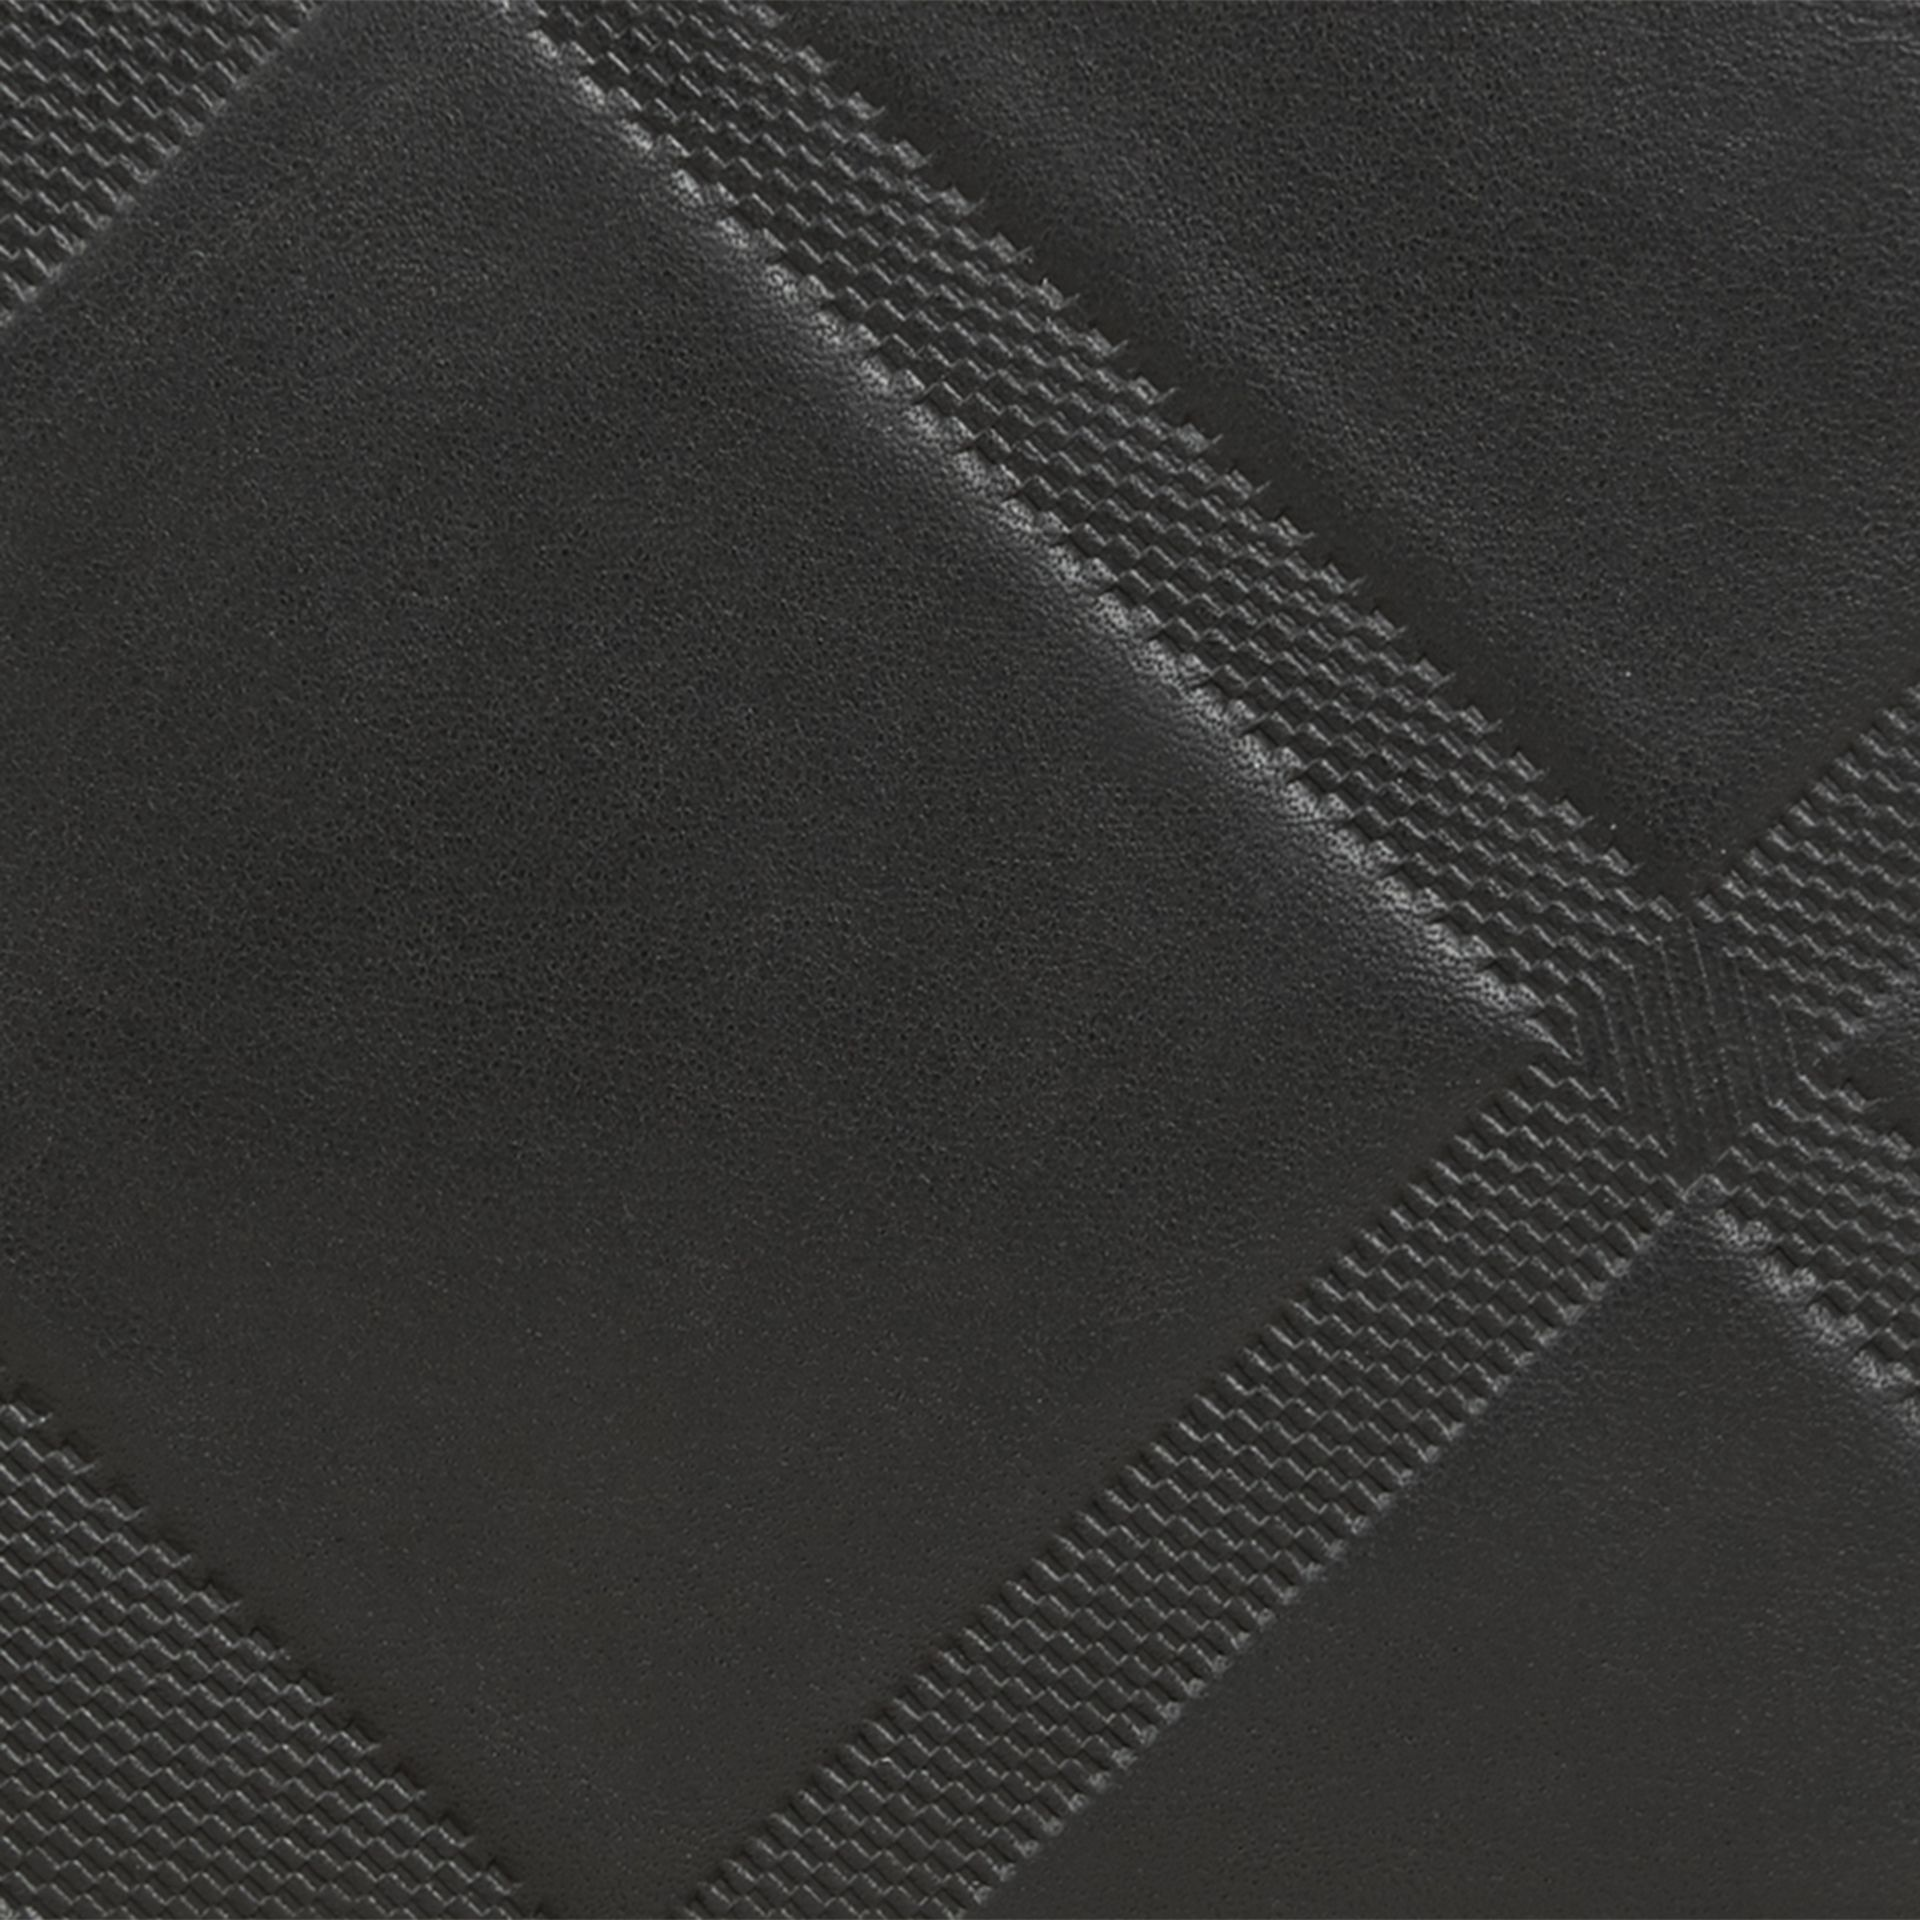 Black Check-embossed Leather Folding Wallet Black - gallery image 2